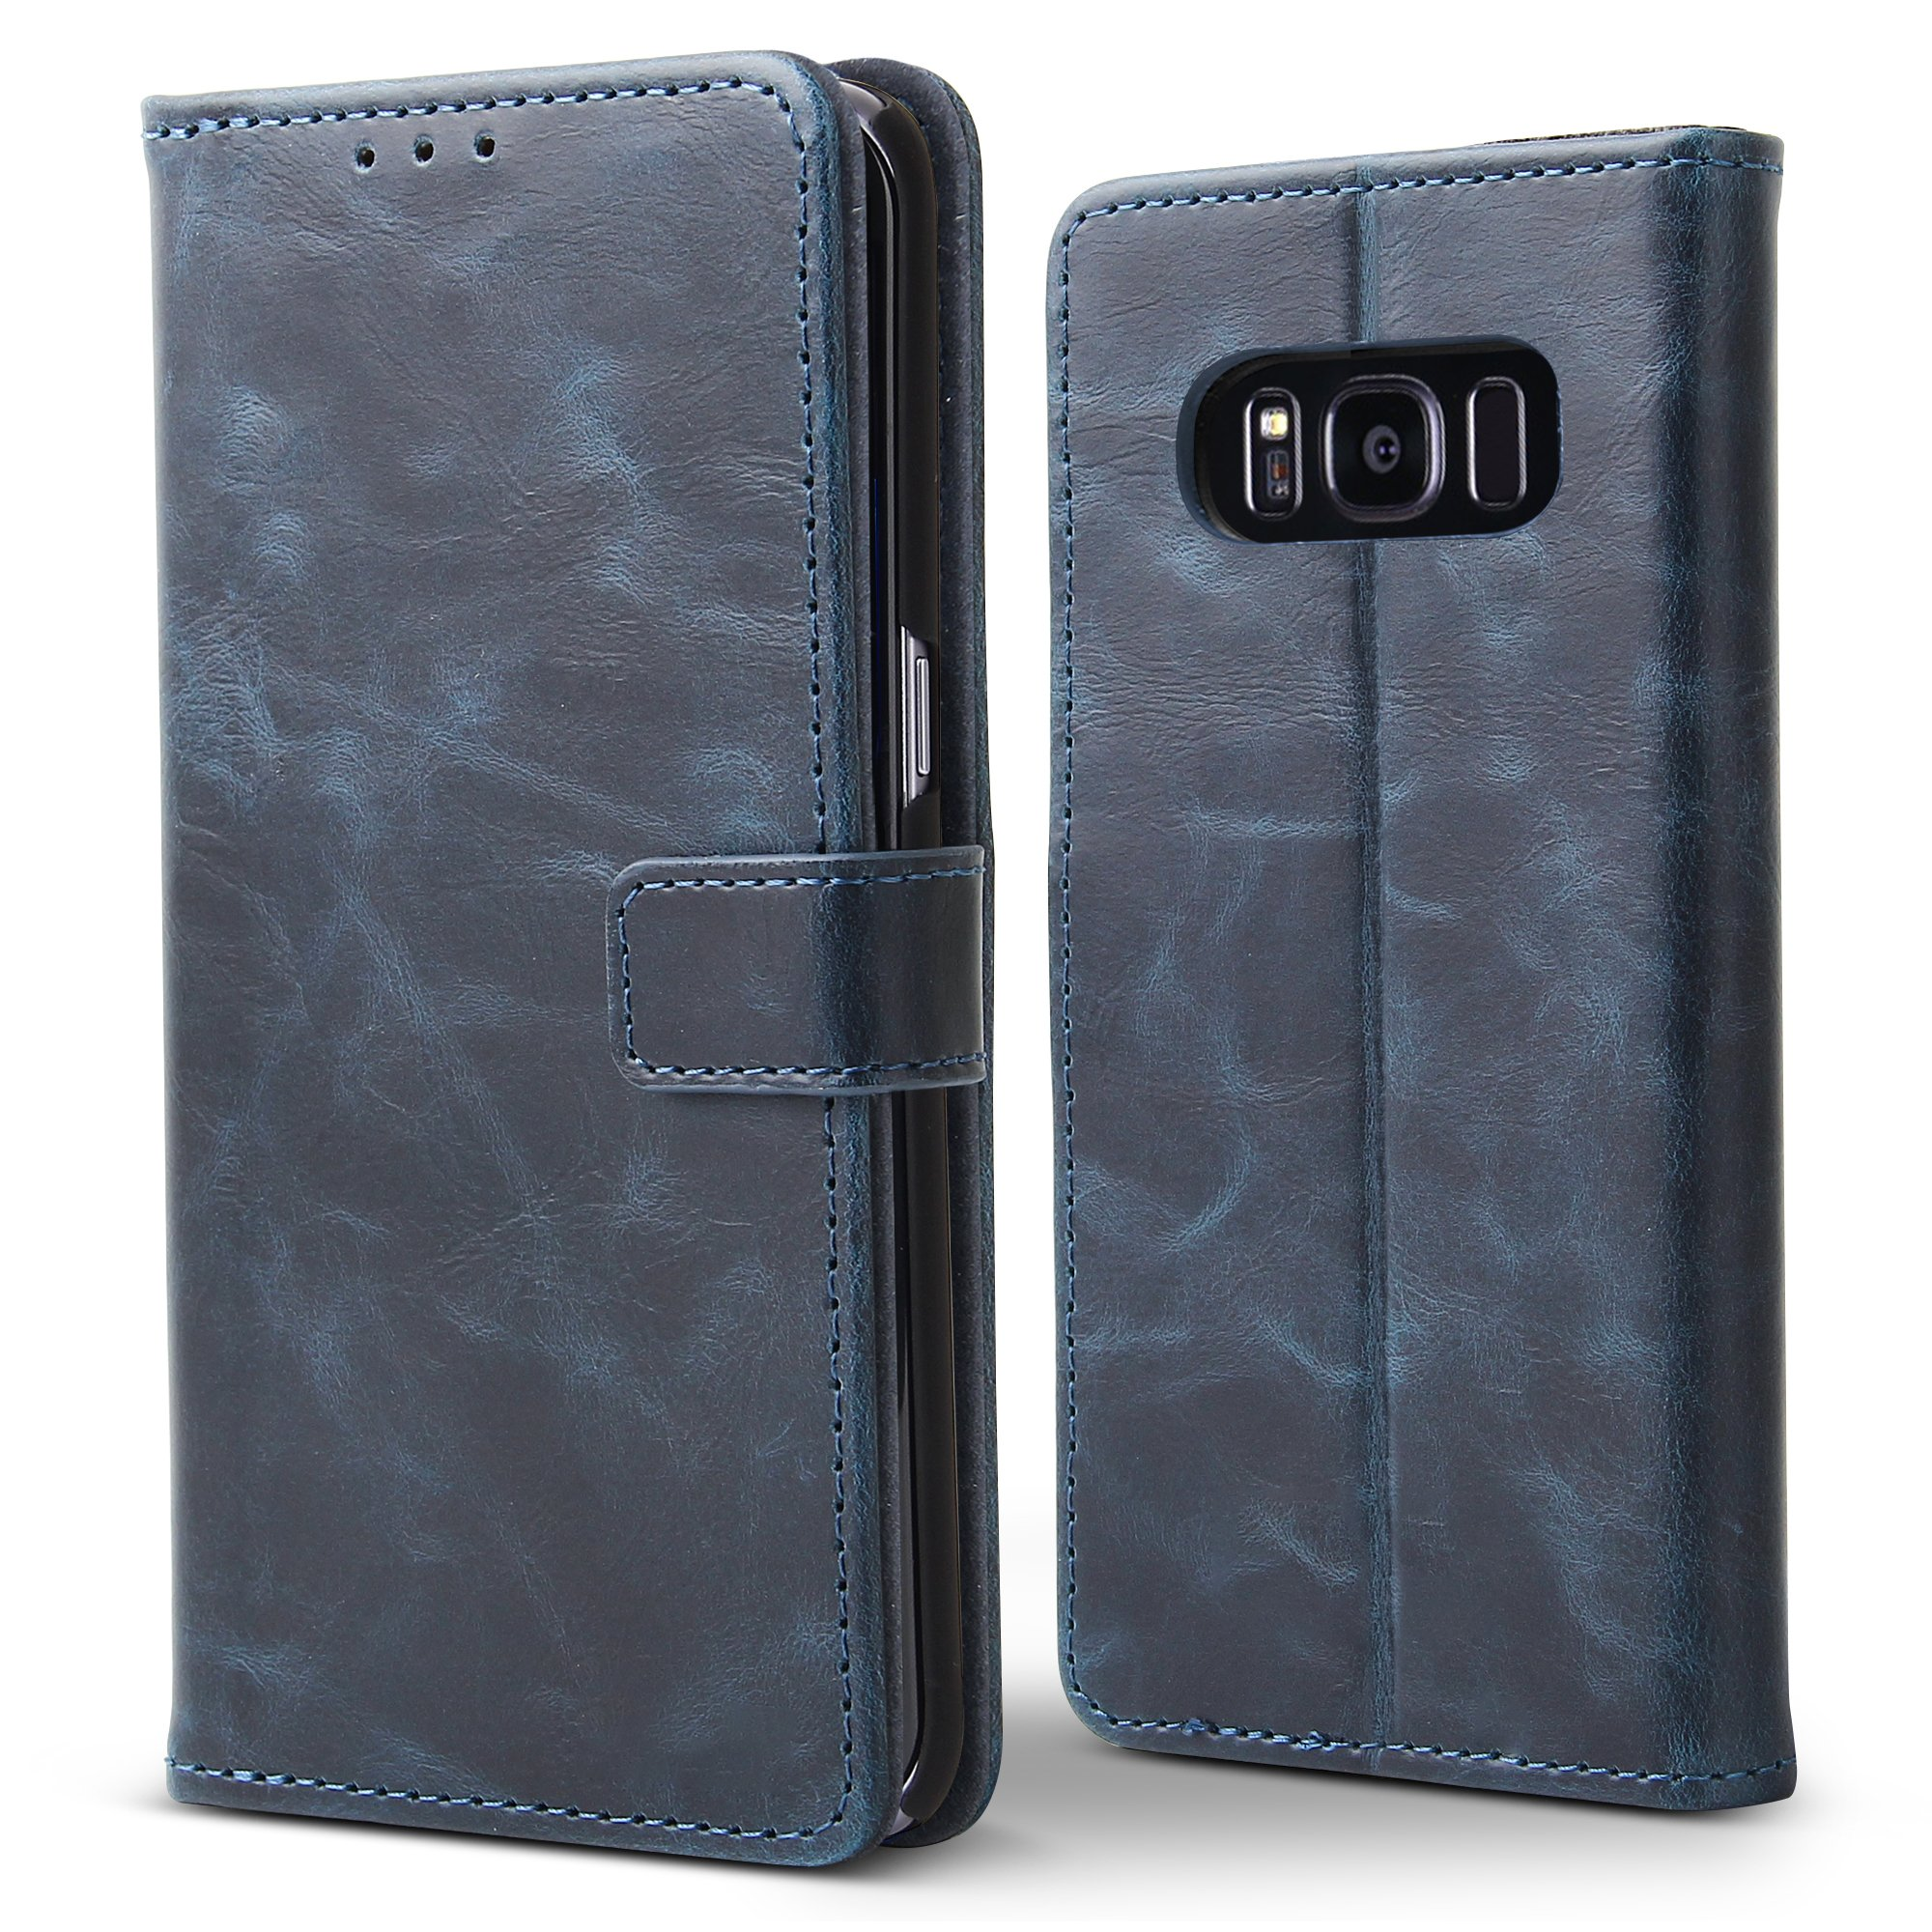 Galaxy S8 Case, B BELK Premium Retro Vintage Leather Classic Magnetic Flip Wallet Case with Hard PC Cover Kickstand Card Holder for Samsung Galaxy S8-5.8'', Blue